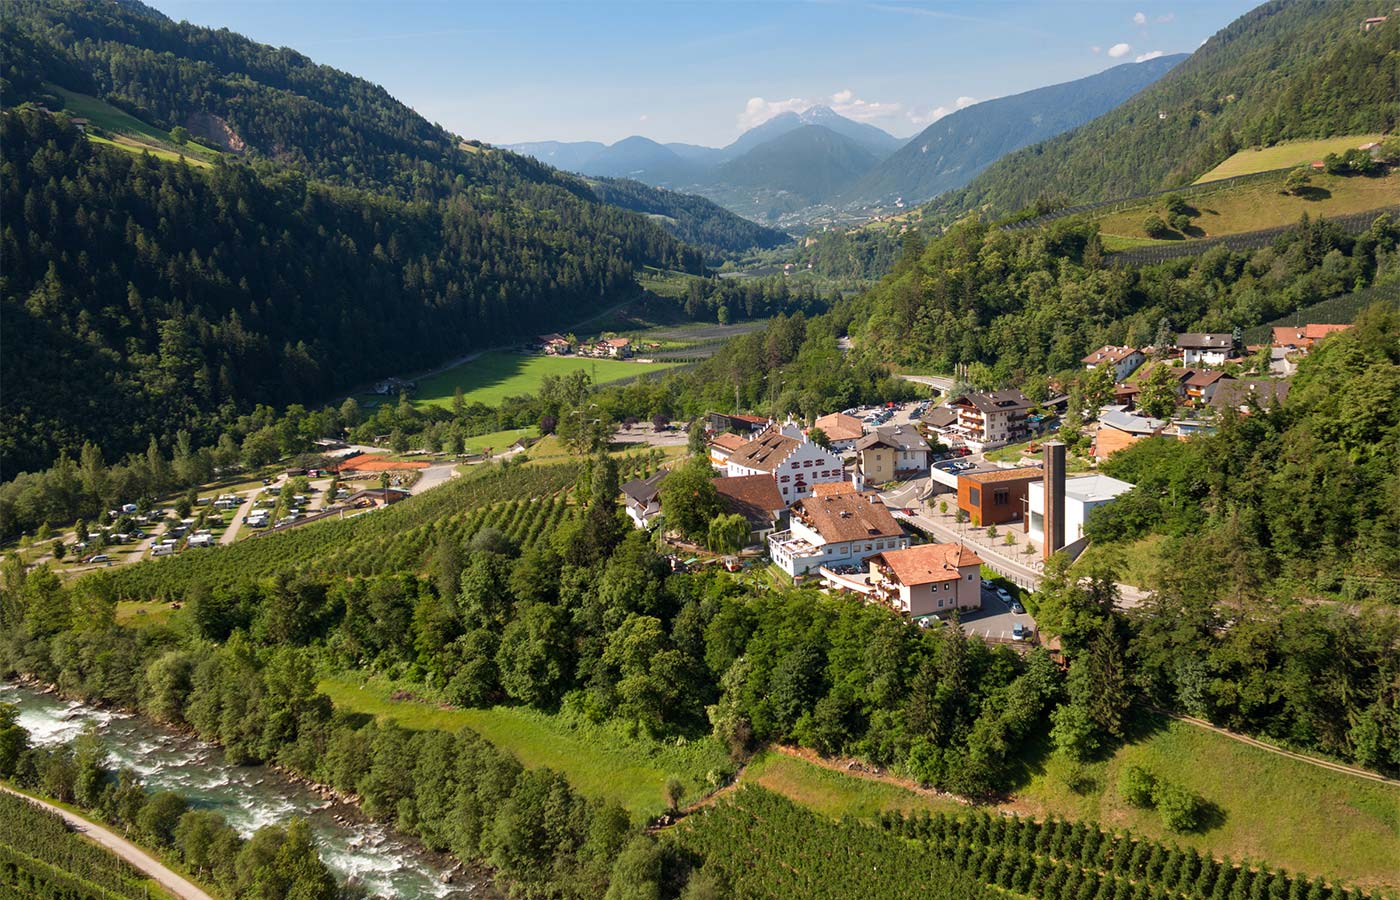 Hotel Alpenhof is located in Saltusio, in the southern Val Passiria